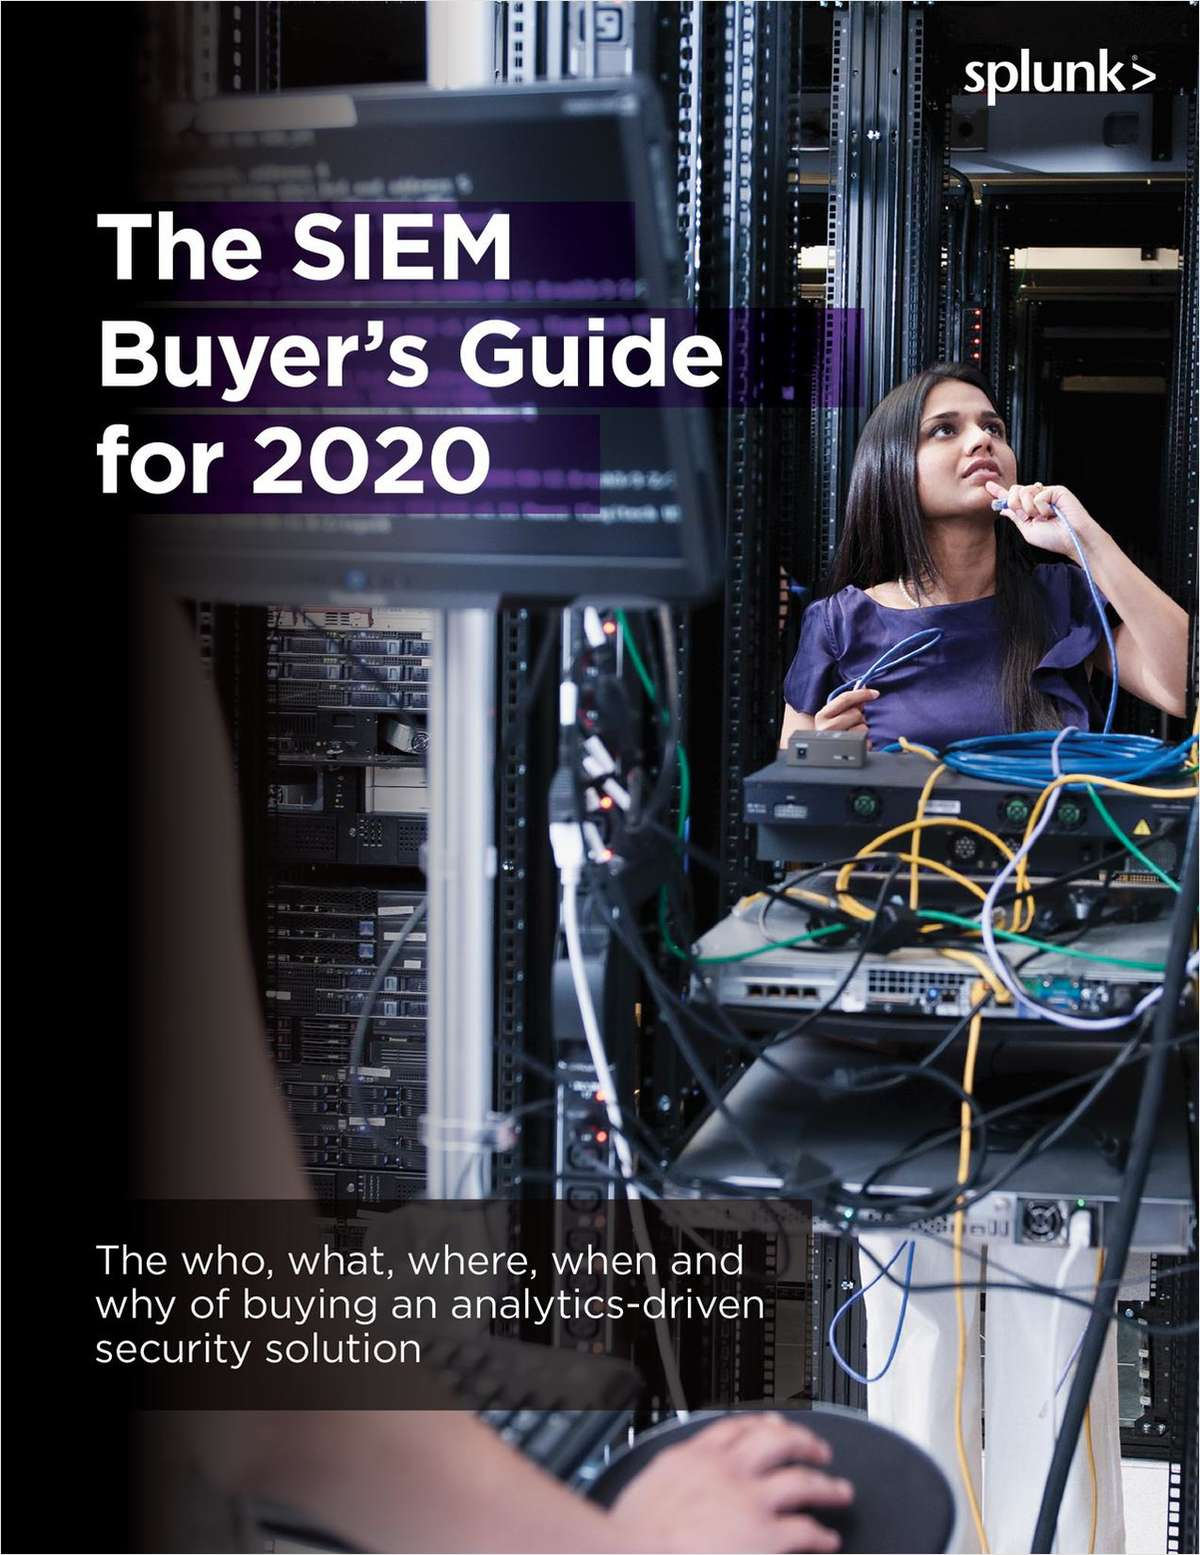 The SIEM Buyers Guide for 2020